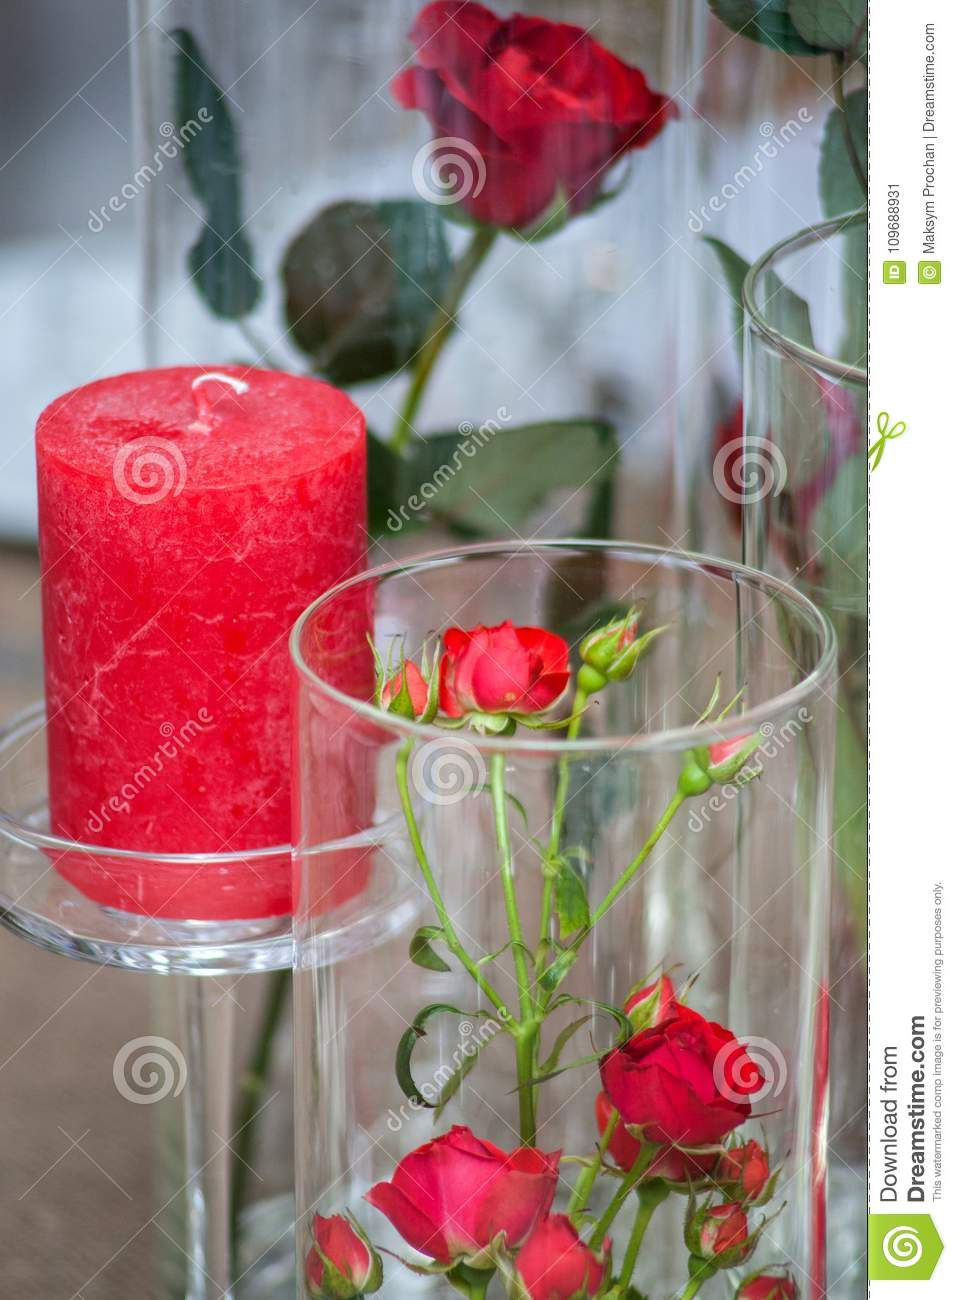 Several glasses of rose wine in the foreground, flowers, cakes and snacks at the festive table, rose, glass, holiday